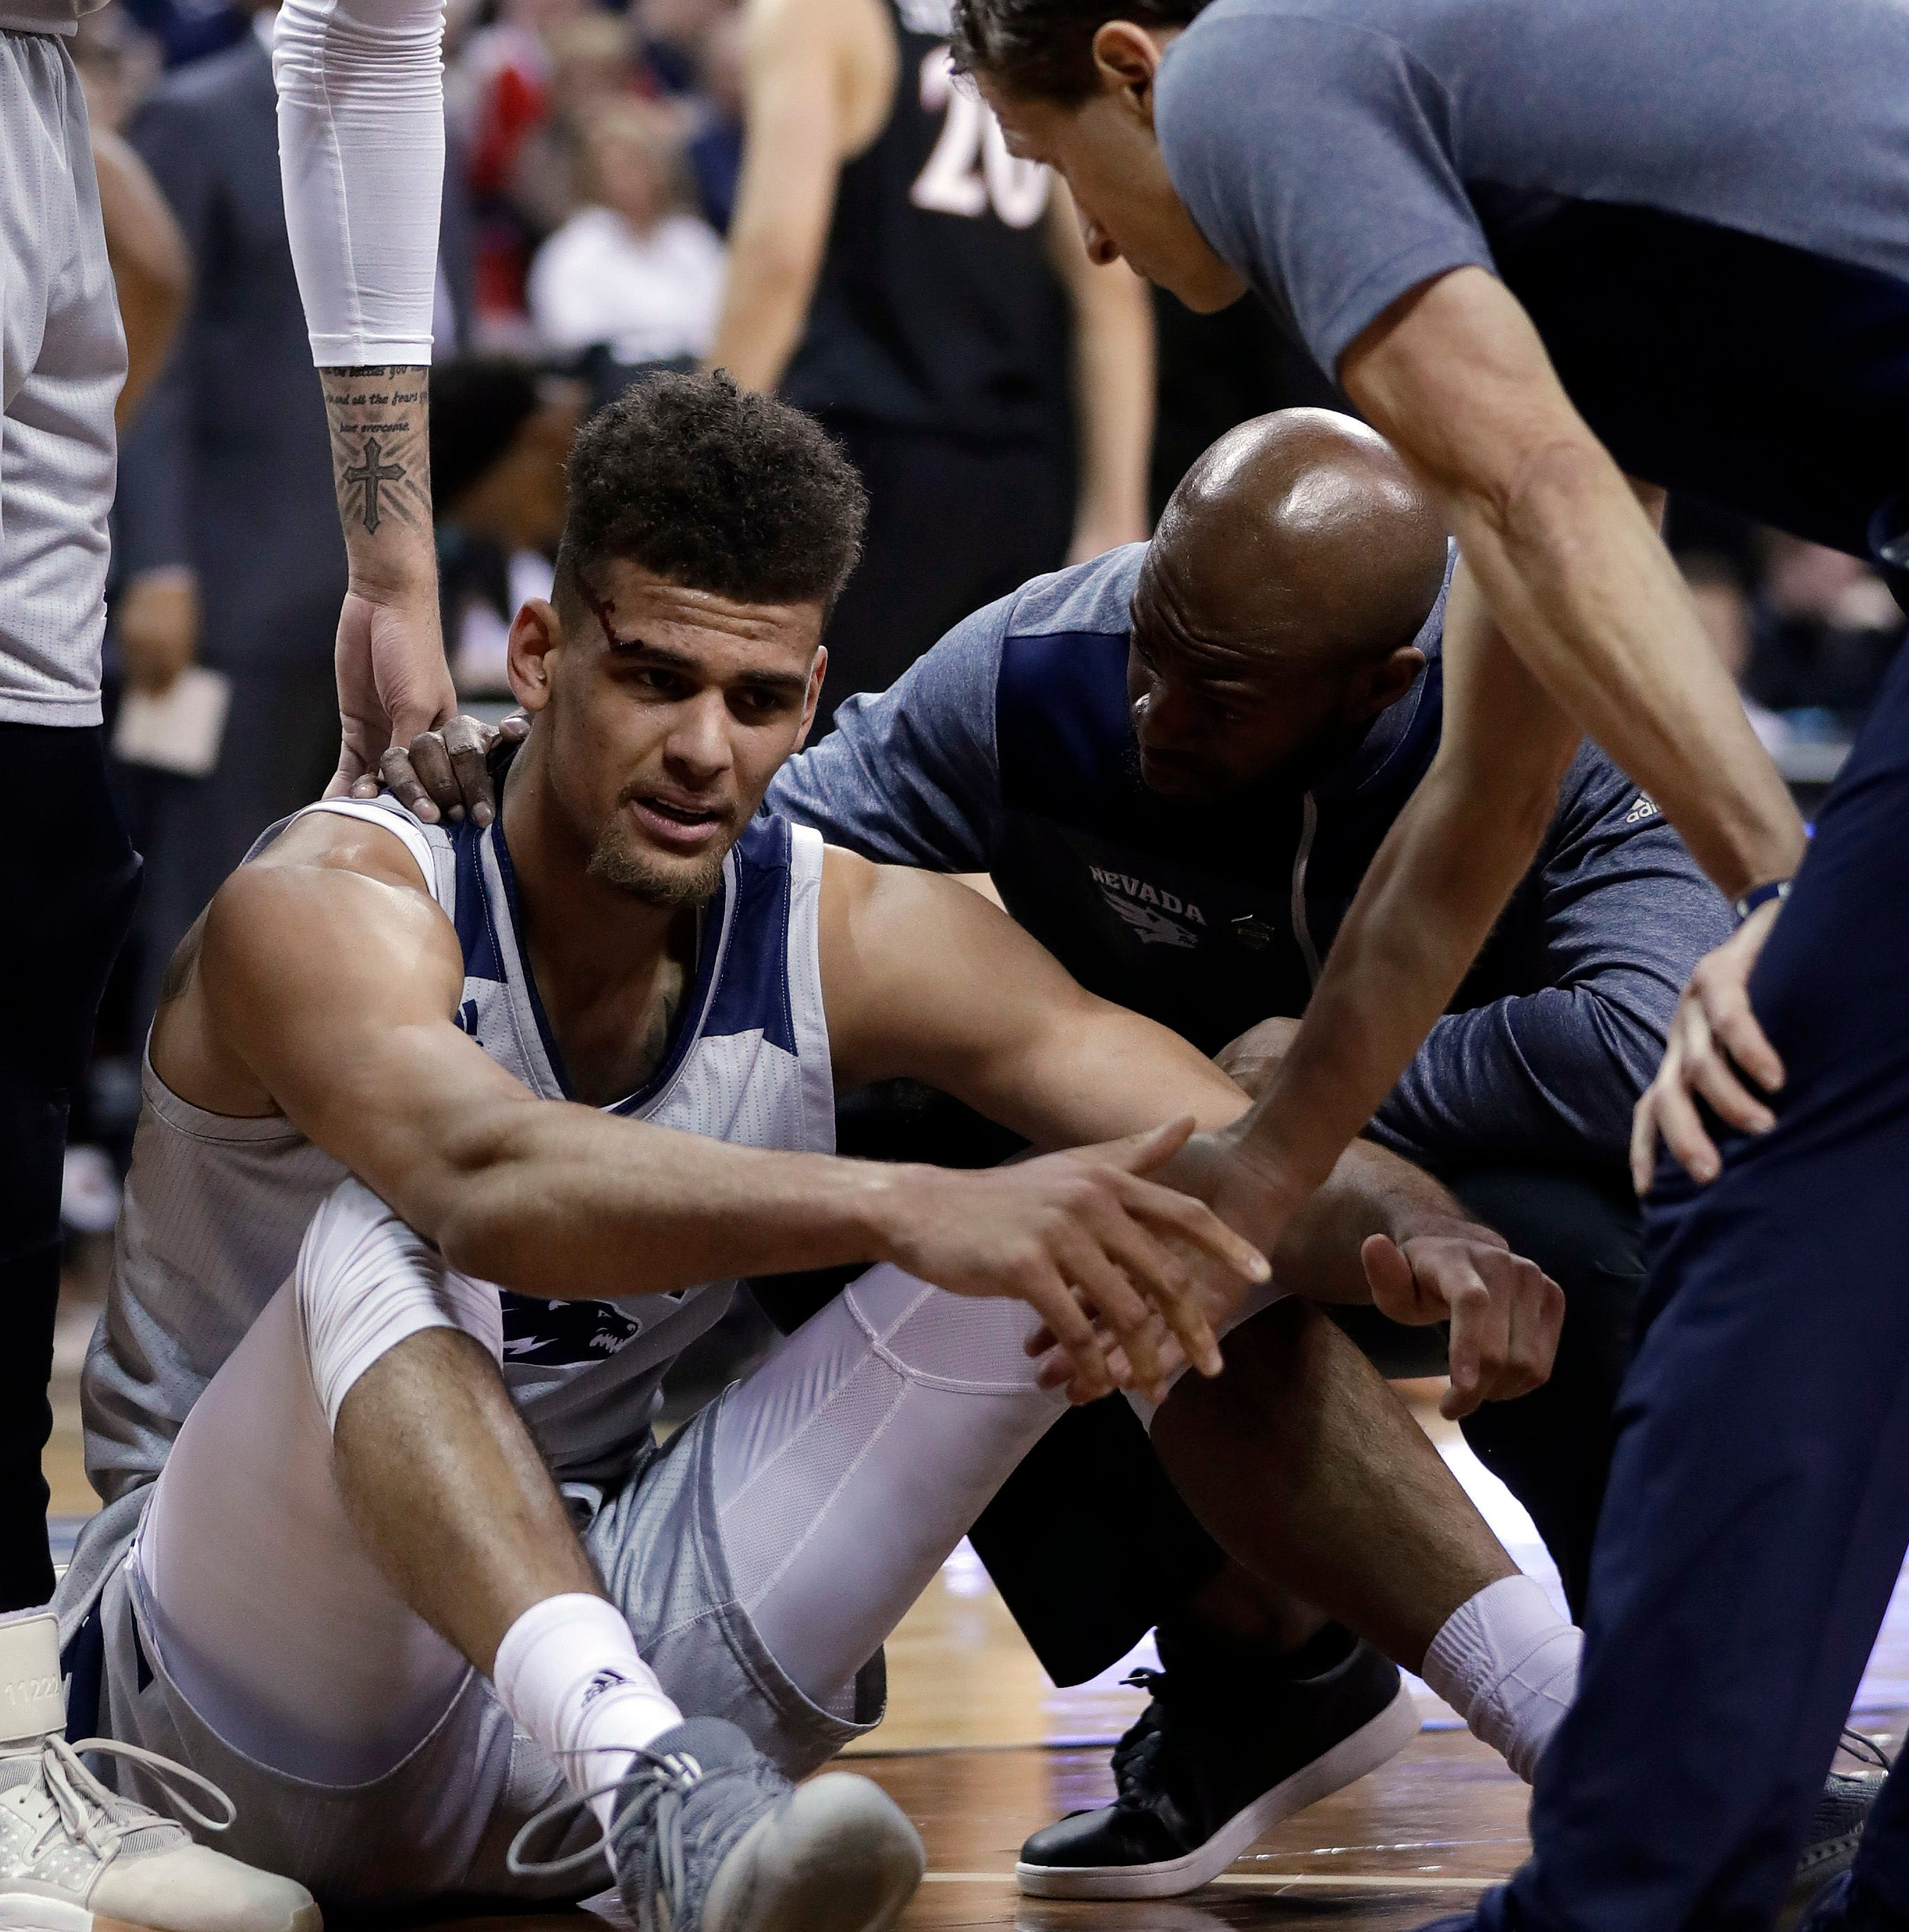 Nevada's Trey Porter leaves game vs. SDSU basketball game bleeding from his head